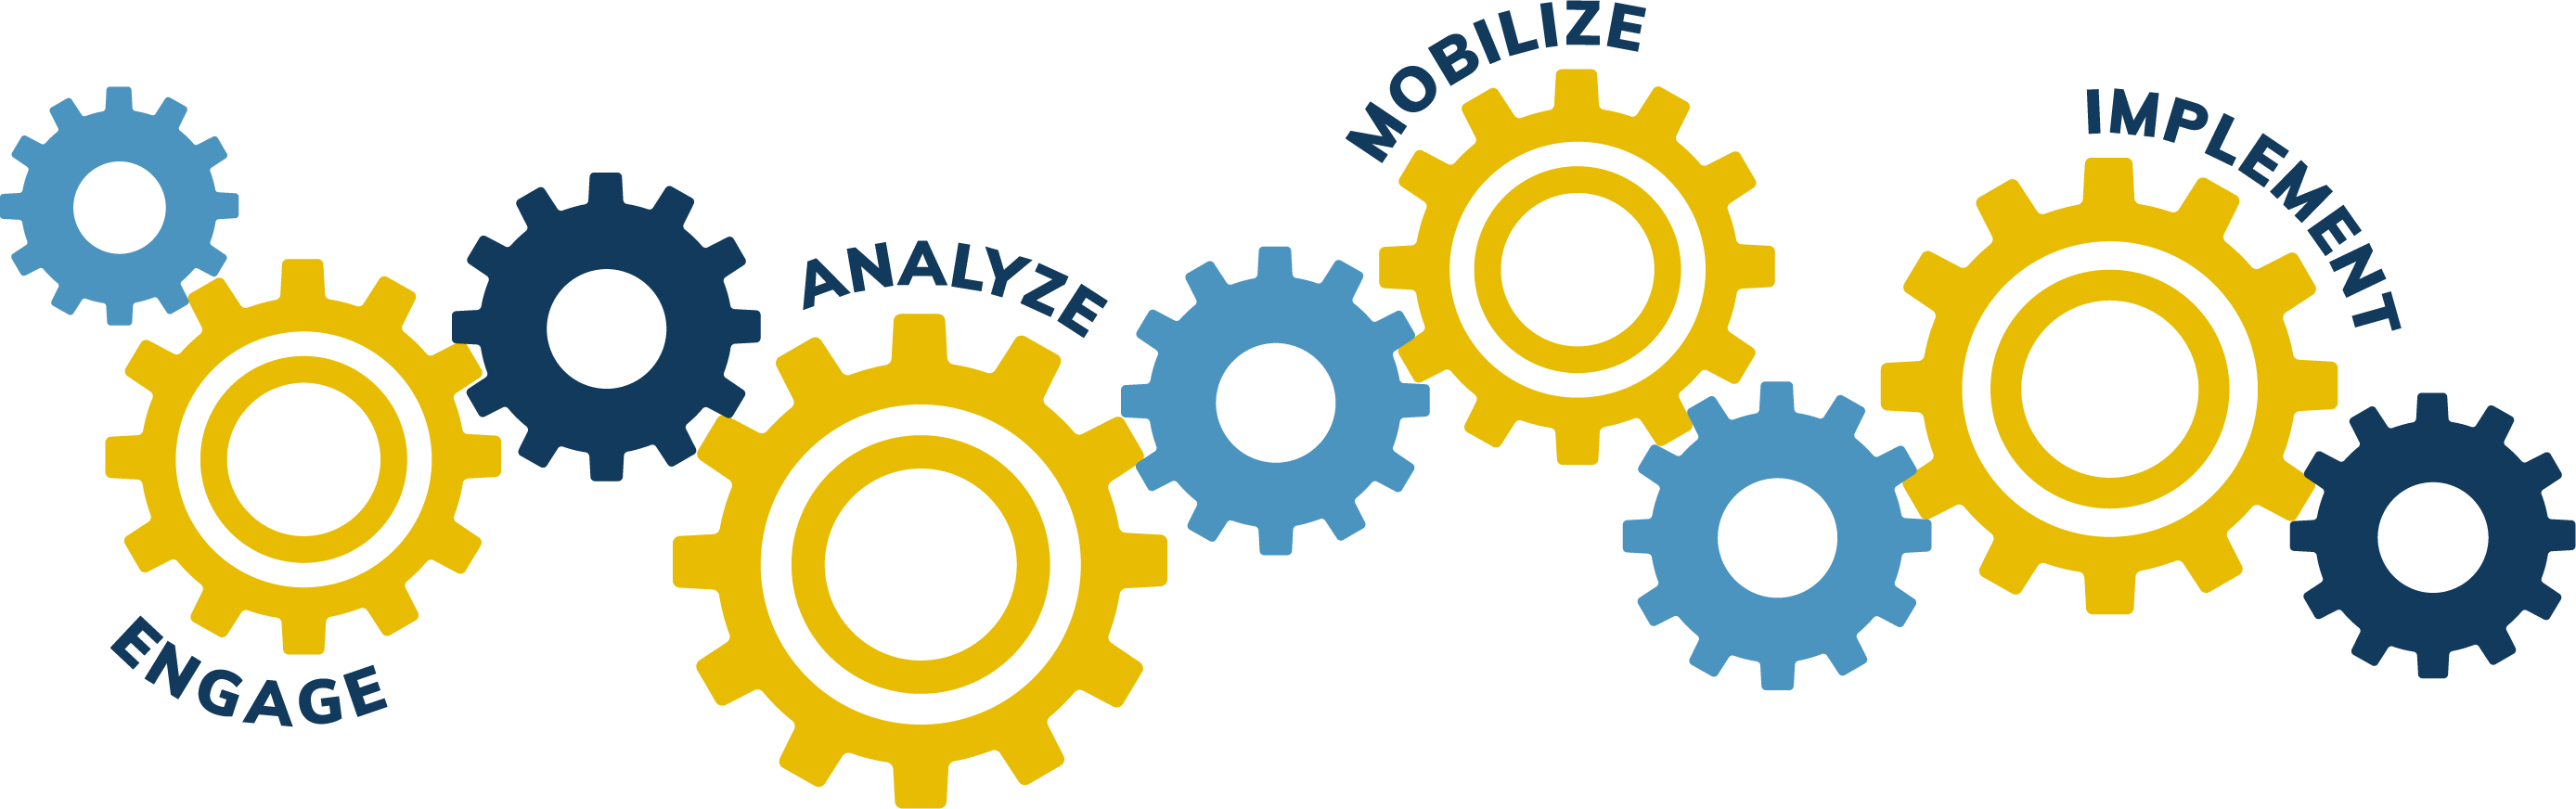 Gears that say Engage, Analyze, Mobilize, and Implement